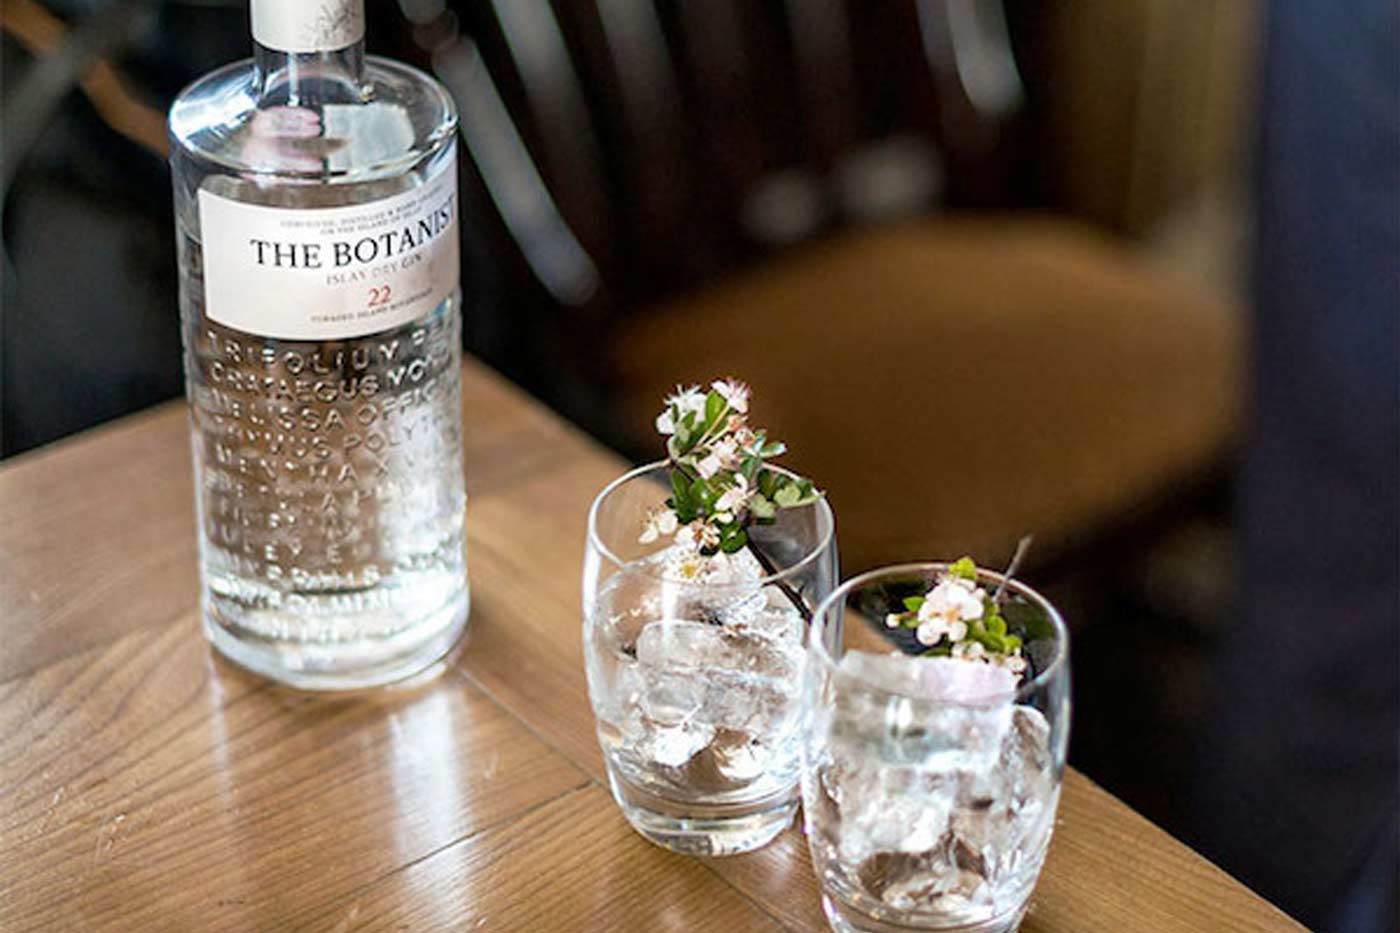 bath priory gin tasting botanist